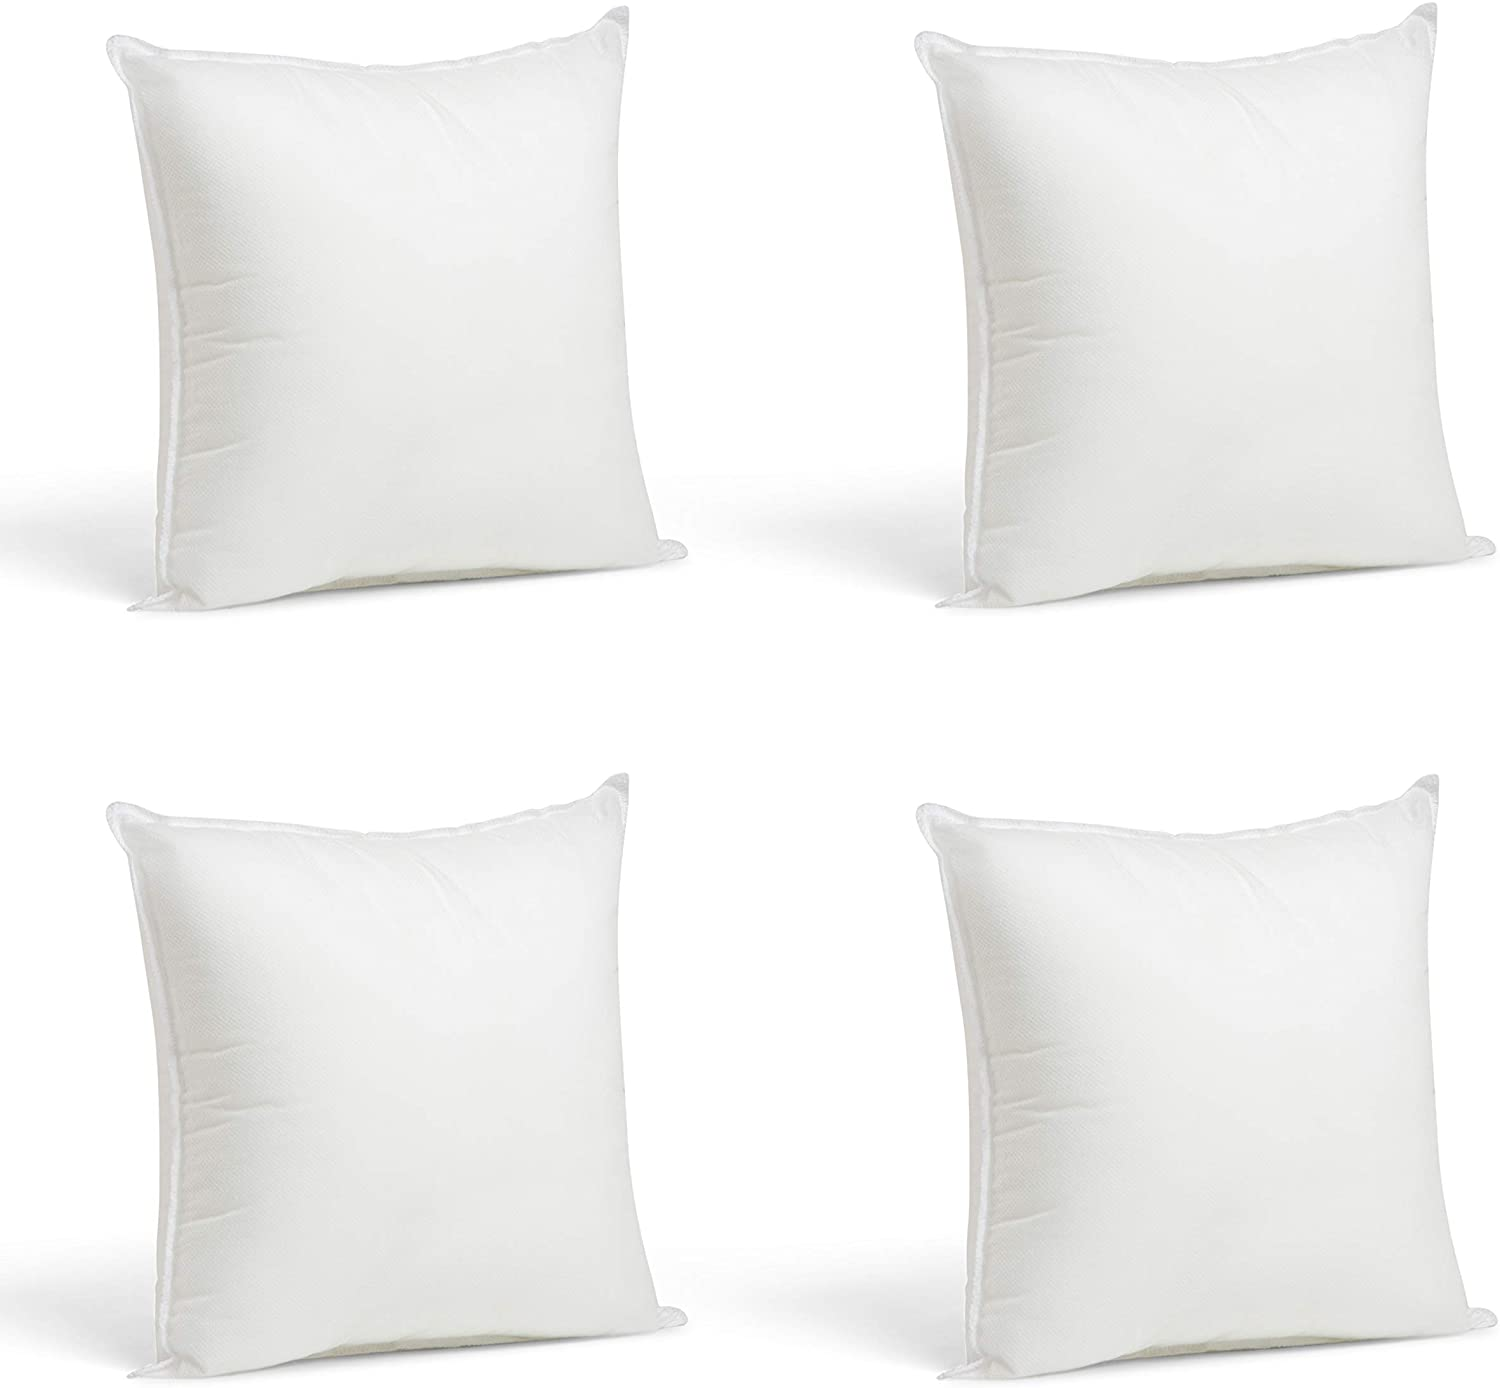 foamily throw pillows set of 4 12 x 12 premium hypoallergenic pillow inserts for couch or bed decorative bedding made in usa